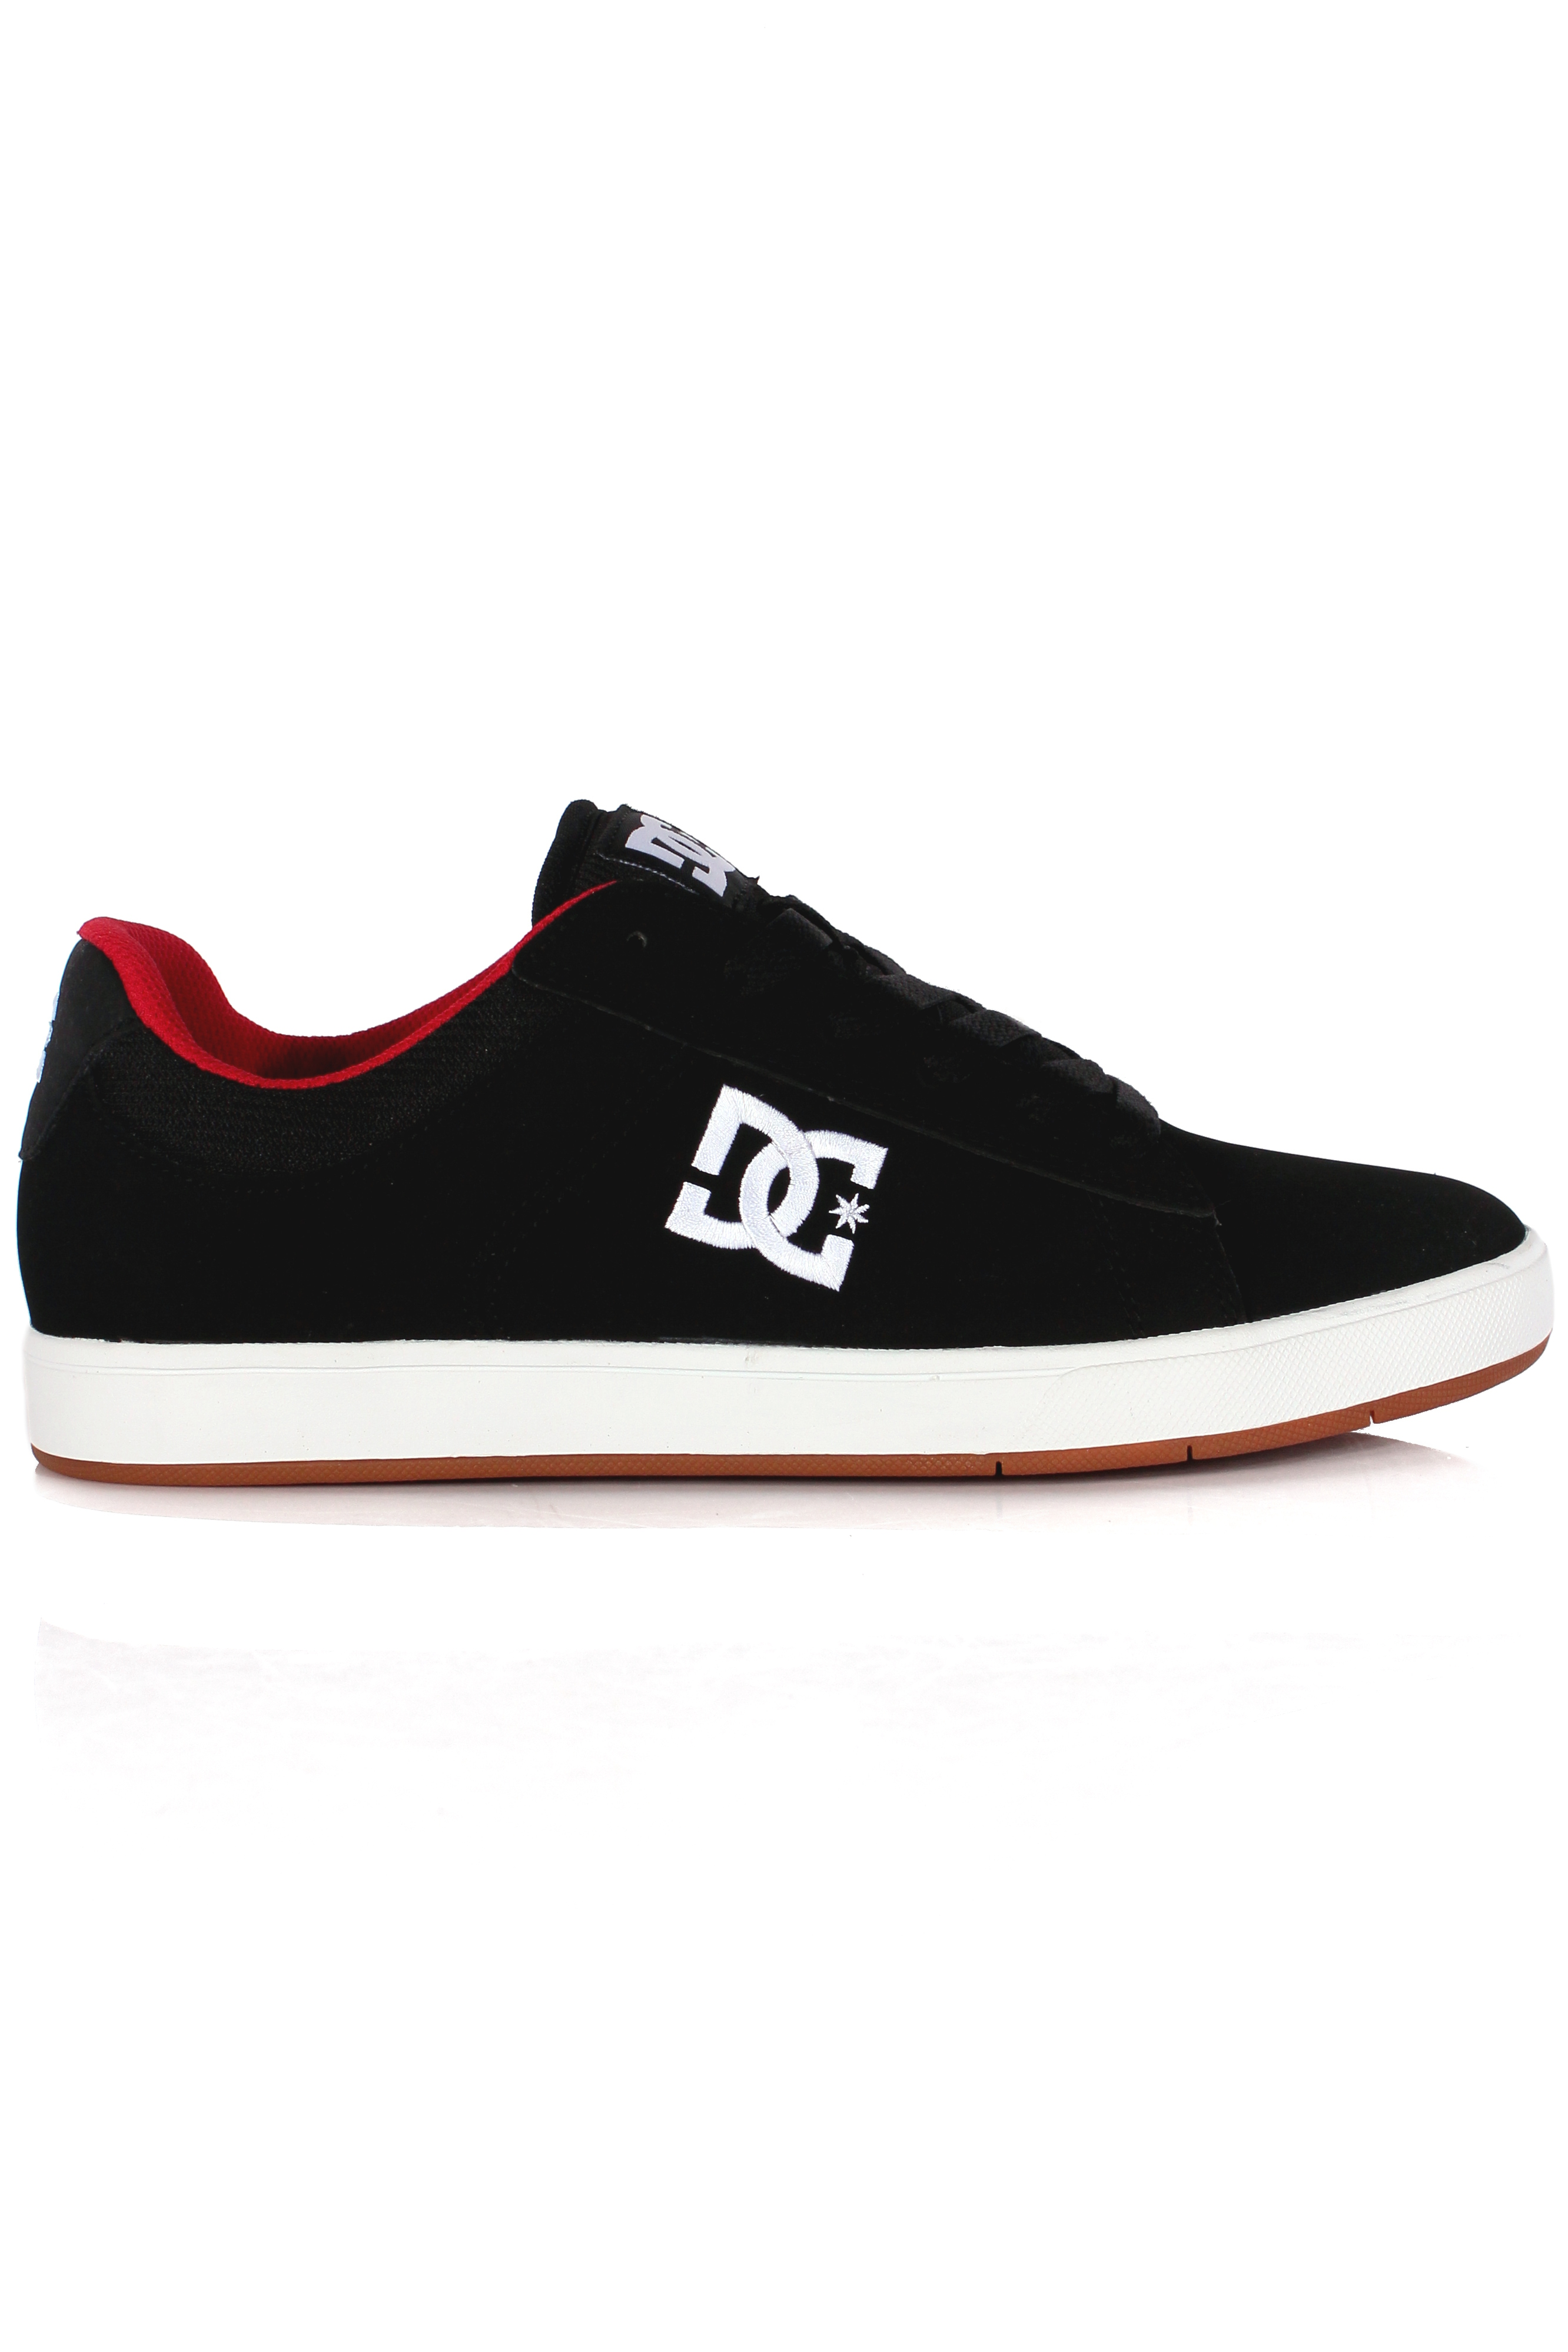 Buty Dc Ignite 2 (Blk/Wht/Red)